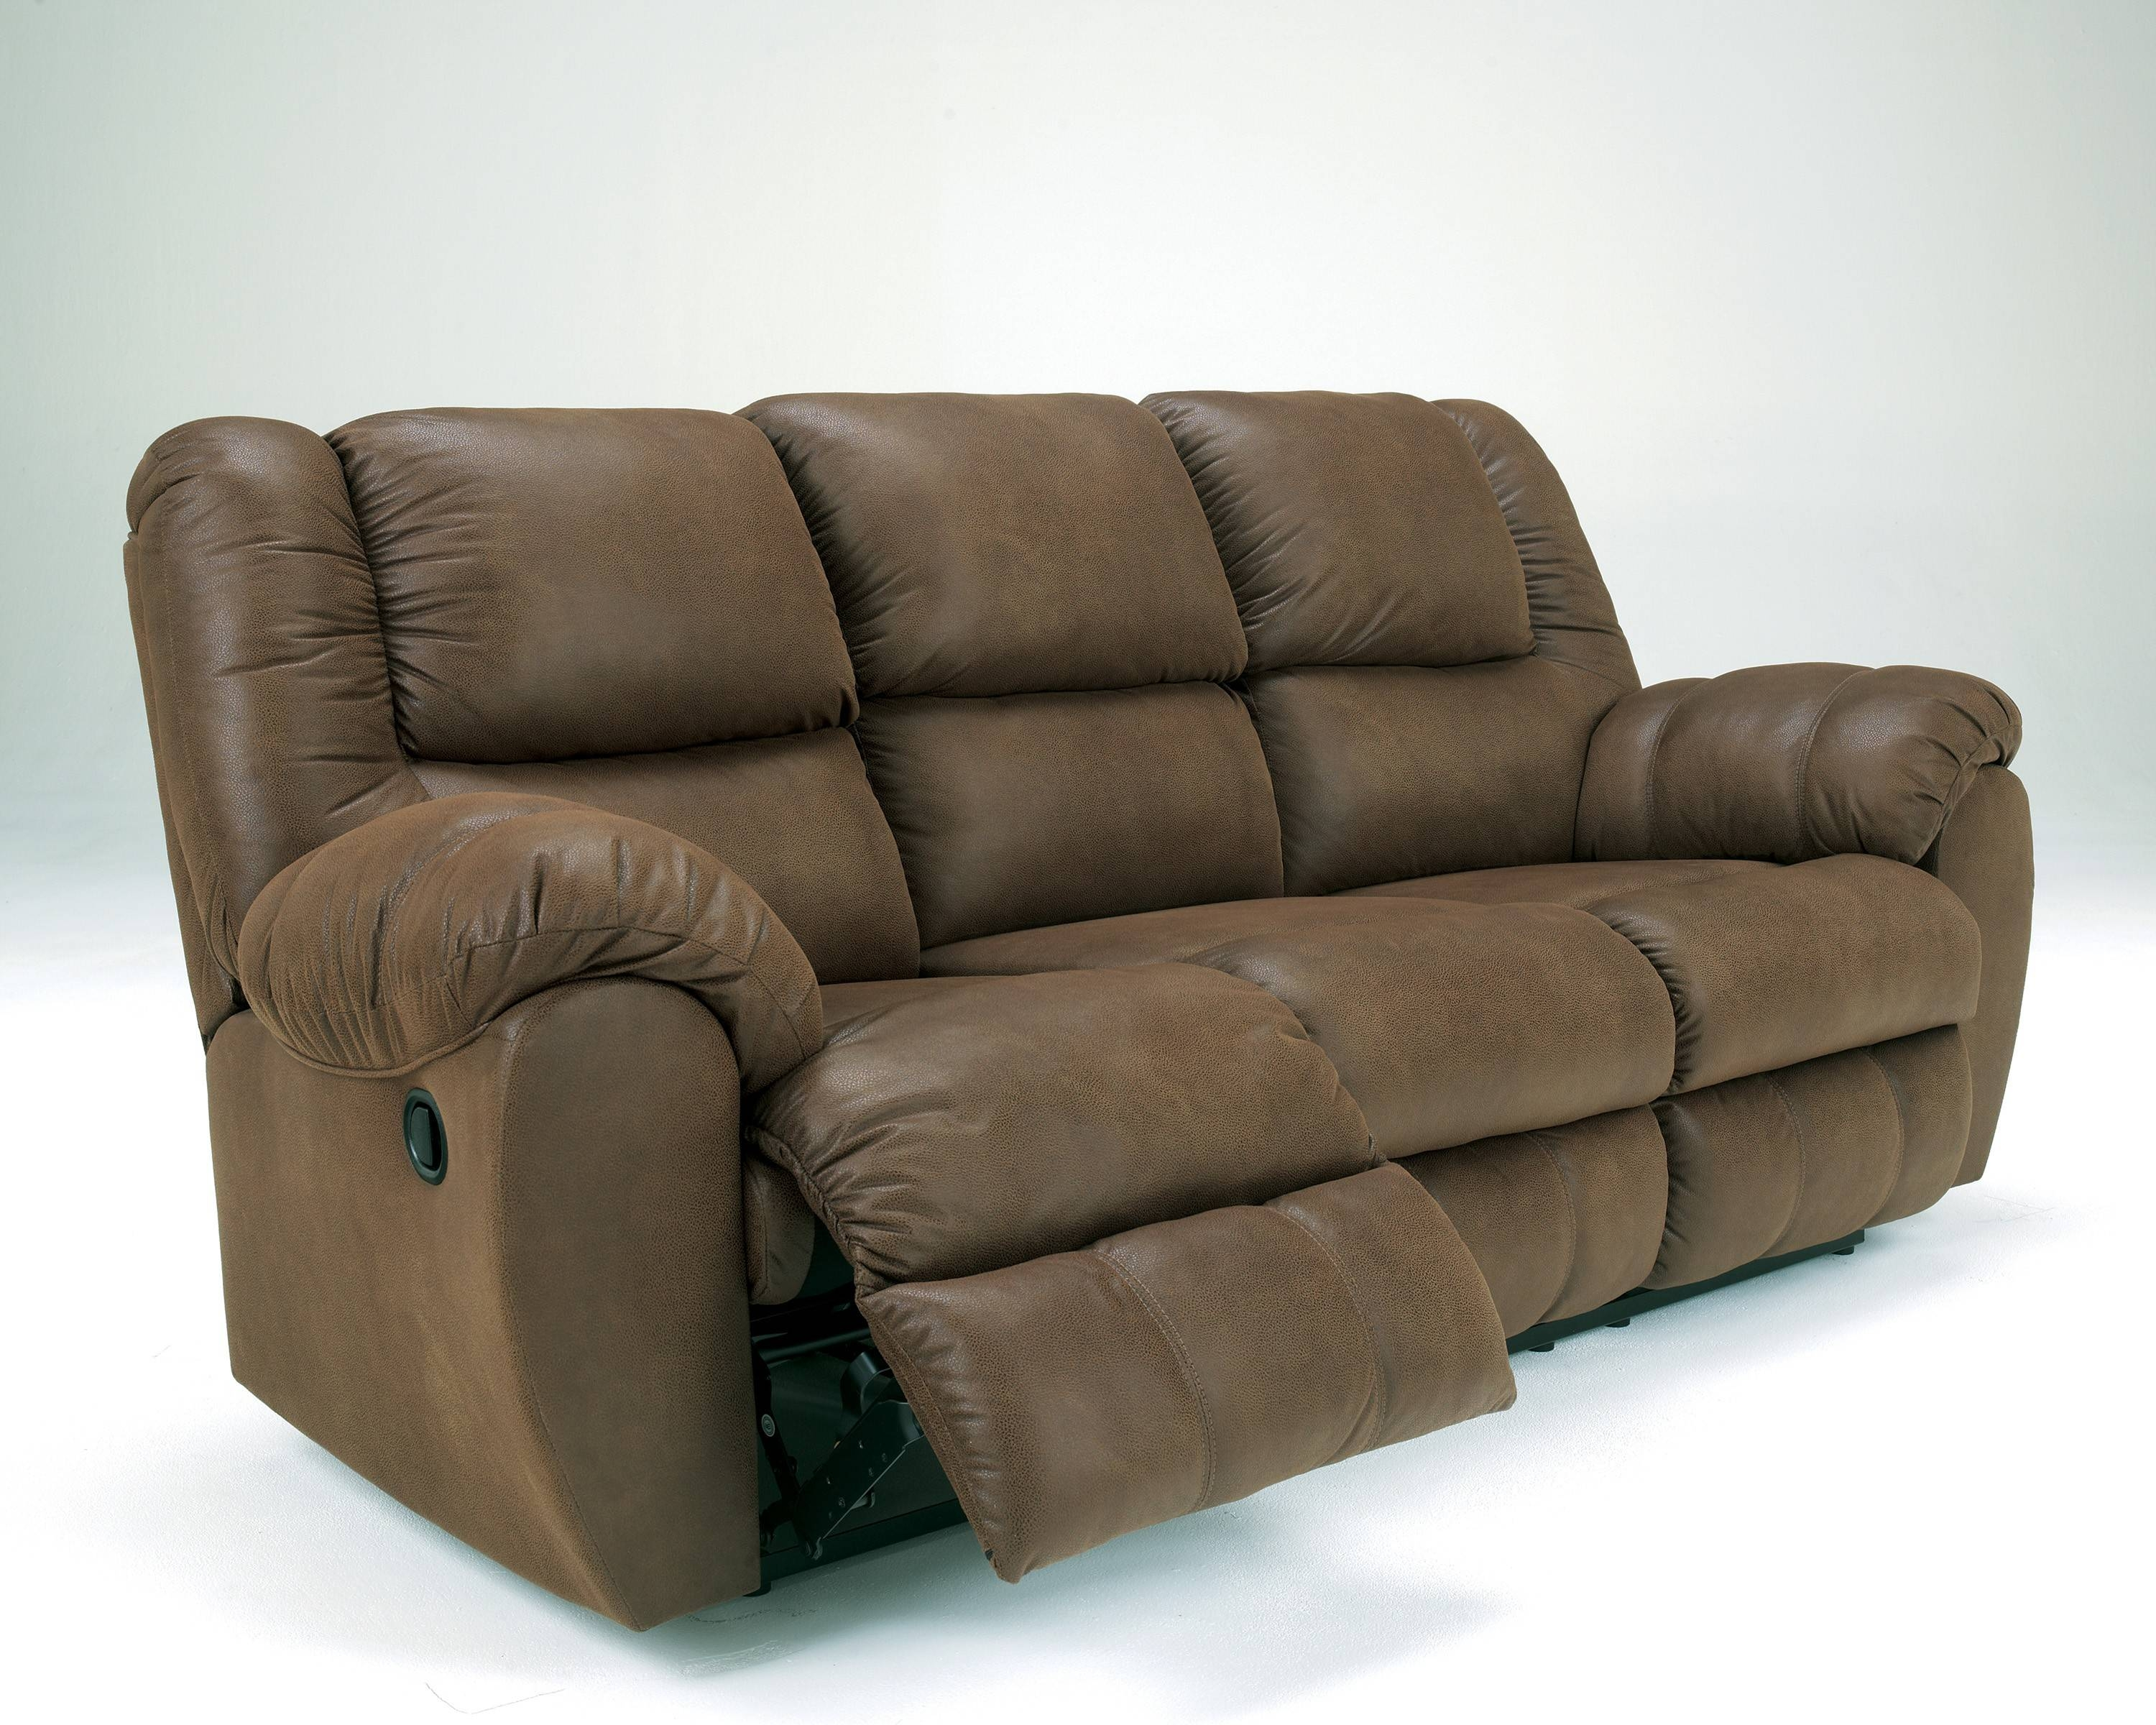 Berkline Reclining Sofa - Aftdth with regard to Berkline Sectional Sofa (Image 6 of 30)